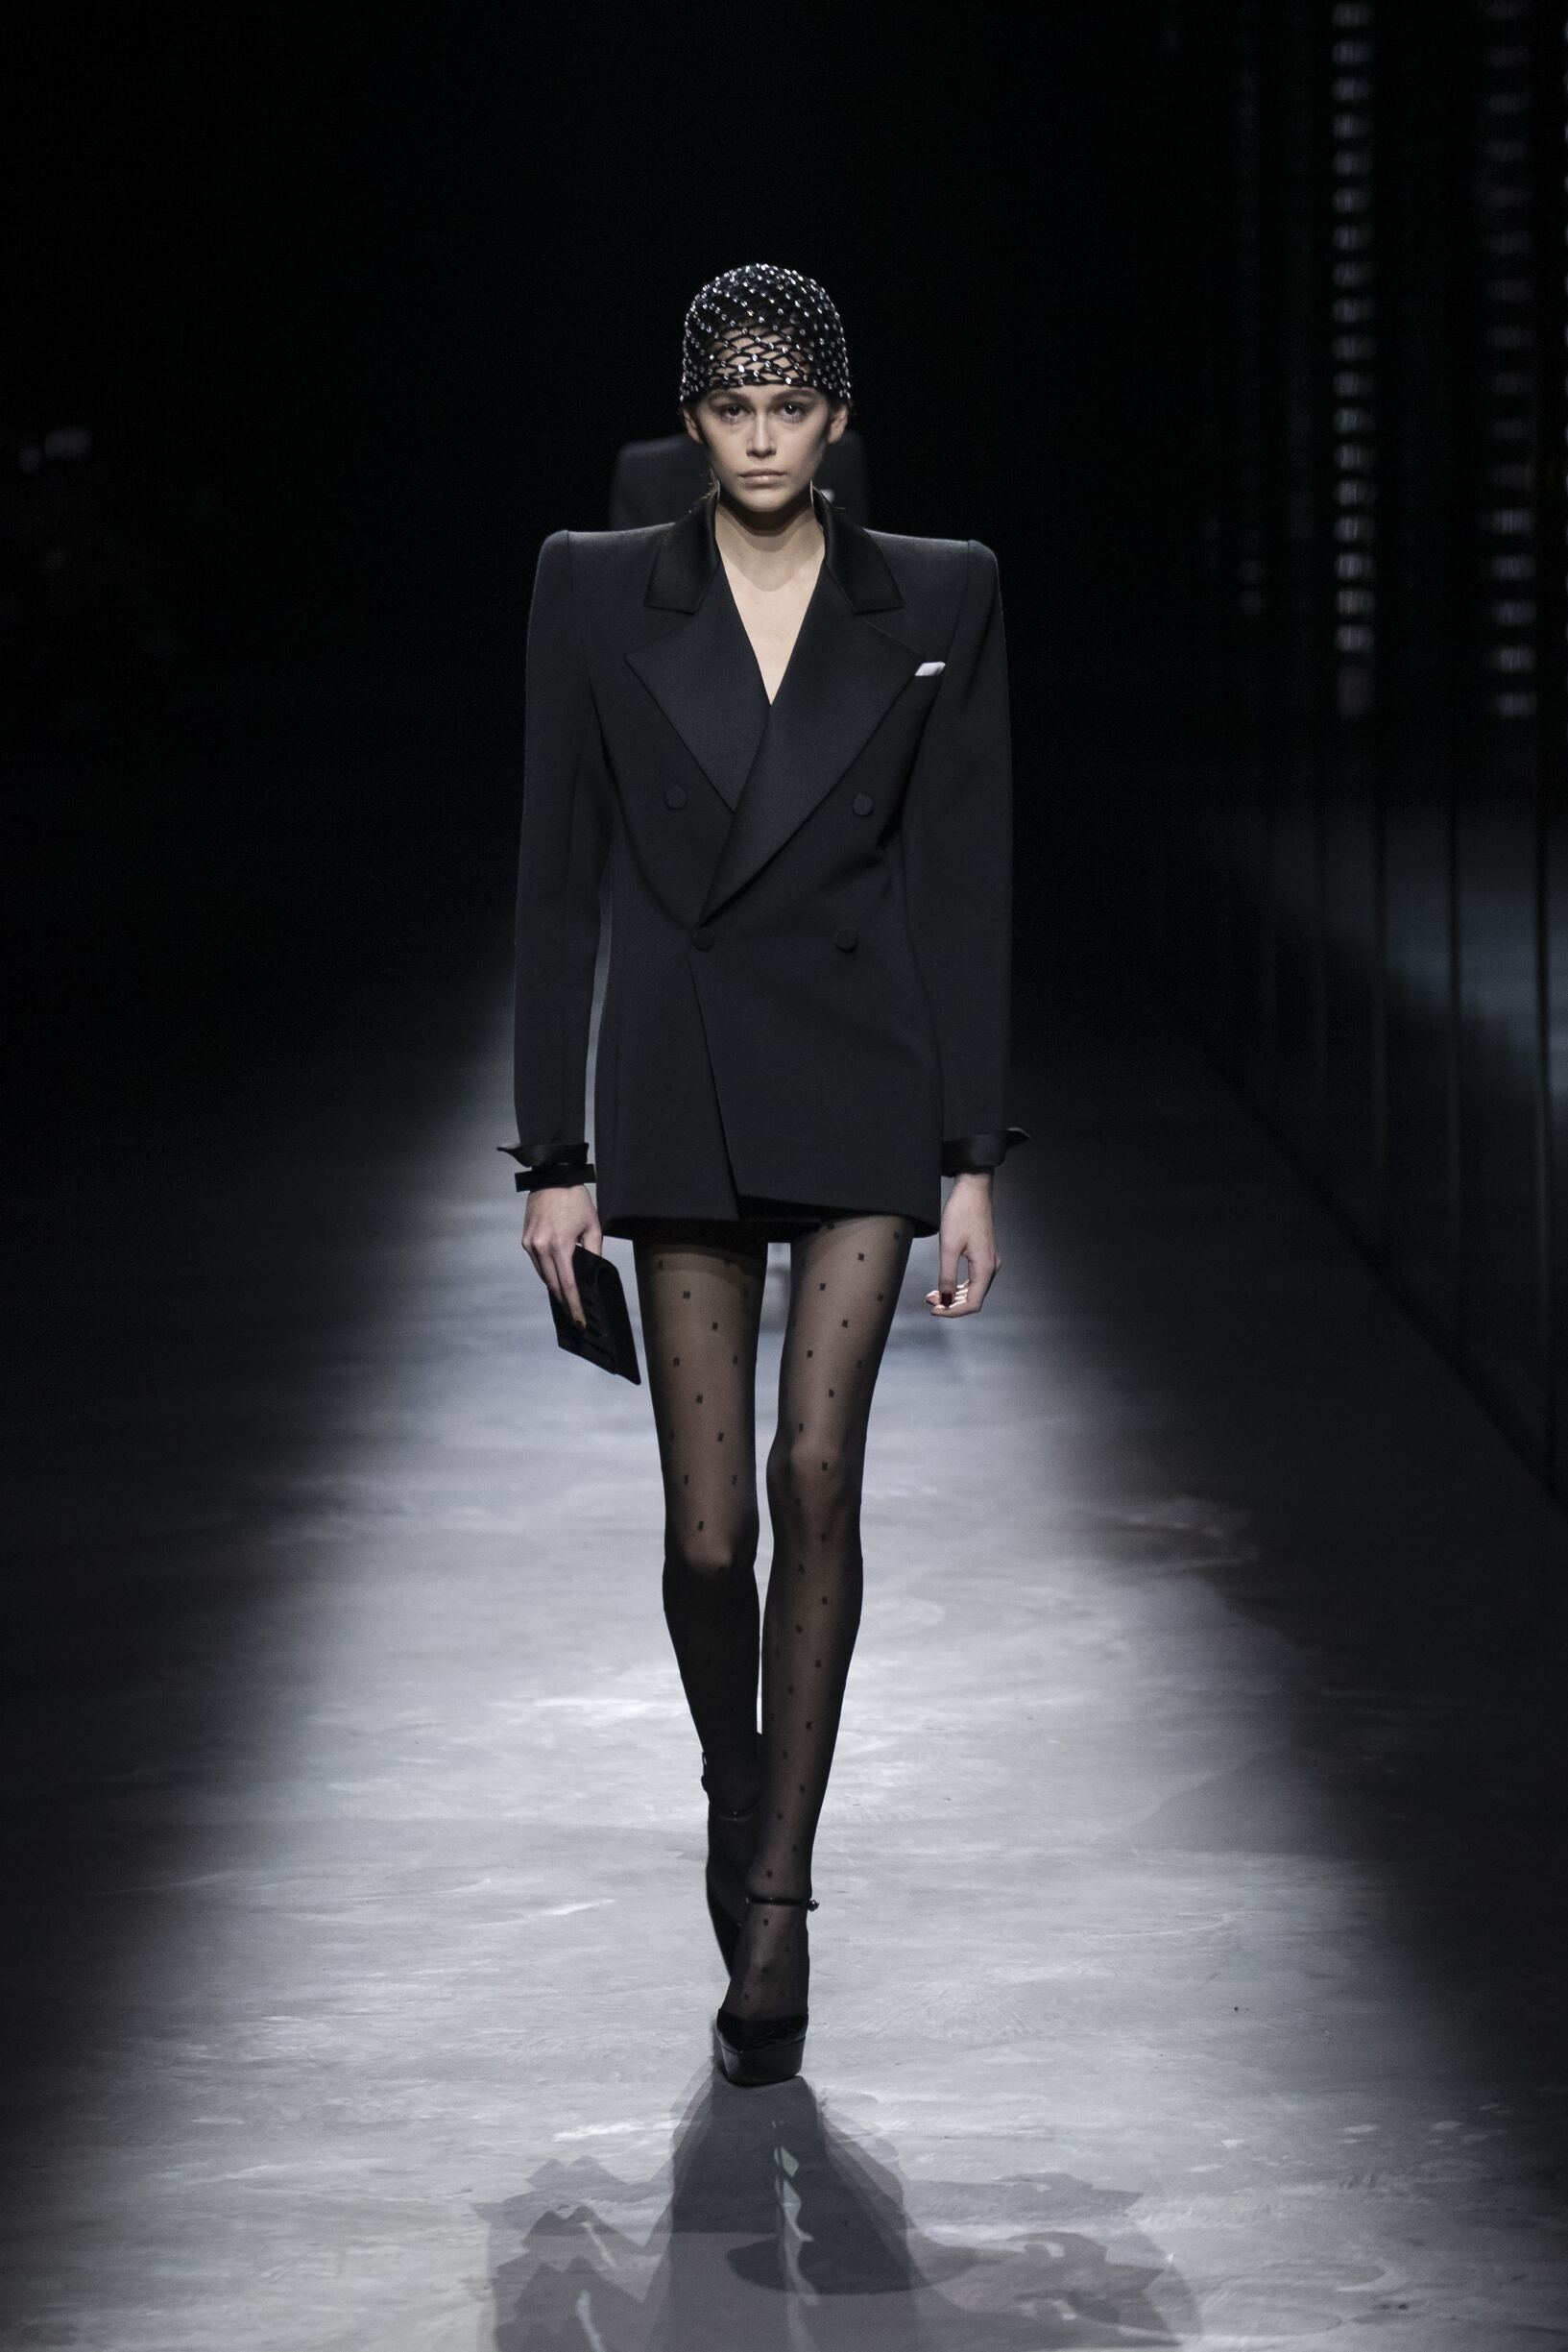 Saint Laurent Womenswear Collection Trends Winter